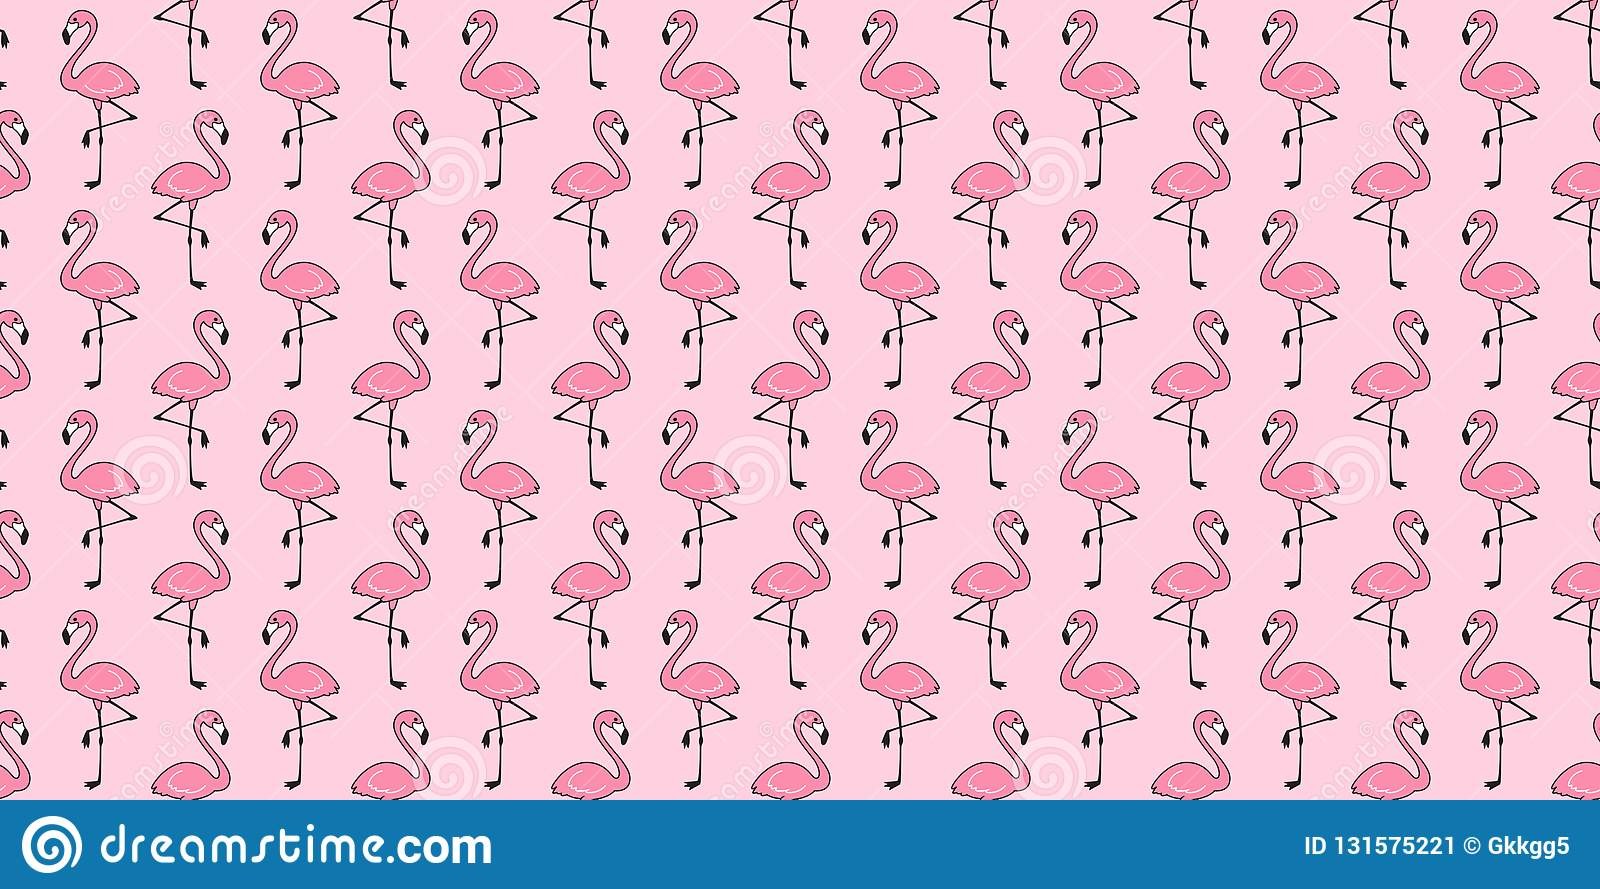 Download 510+ Background Repeat Gratis Terbaik